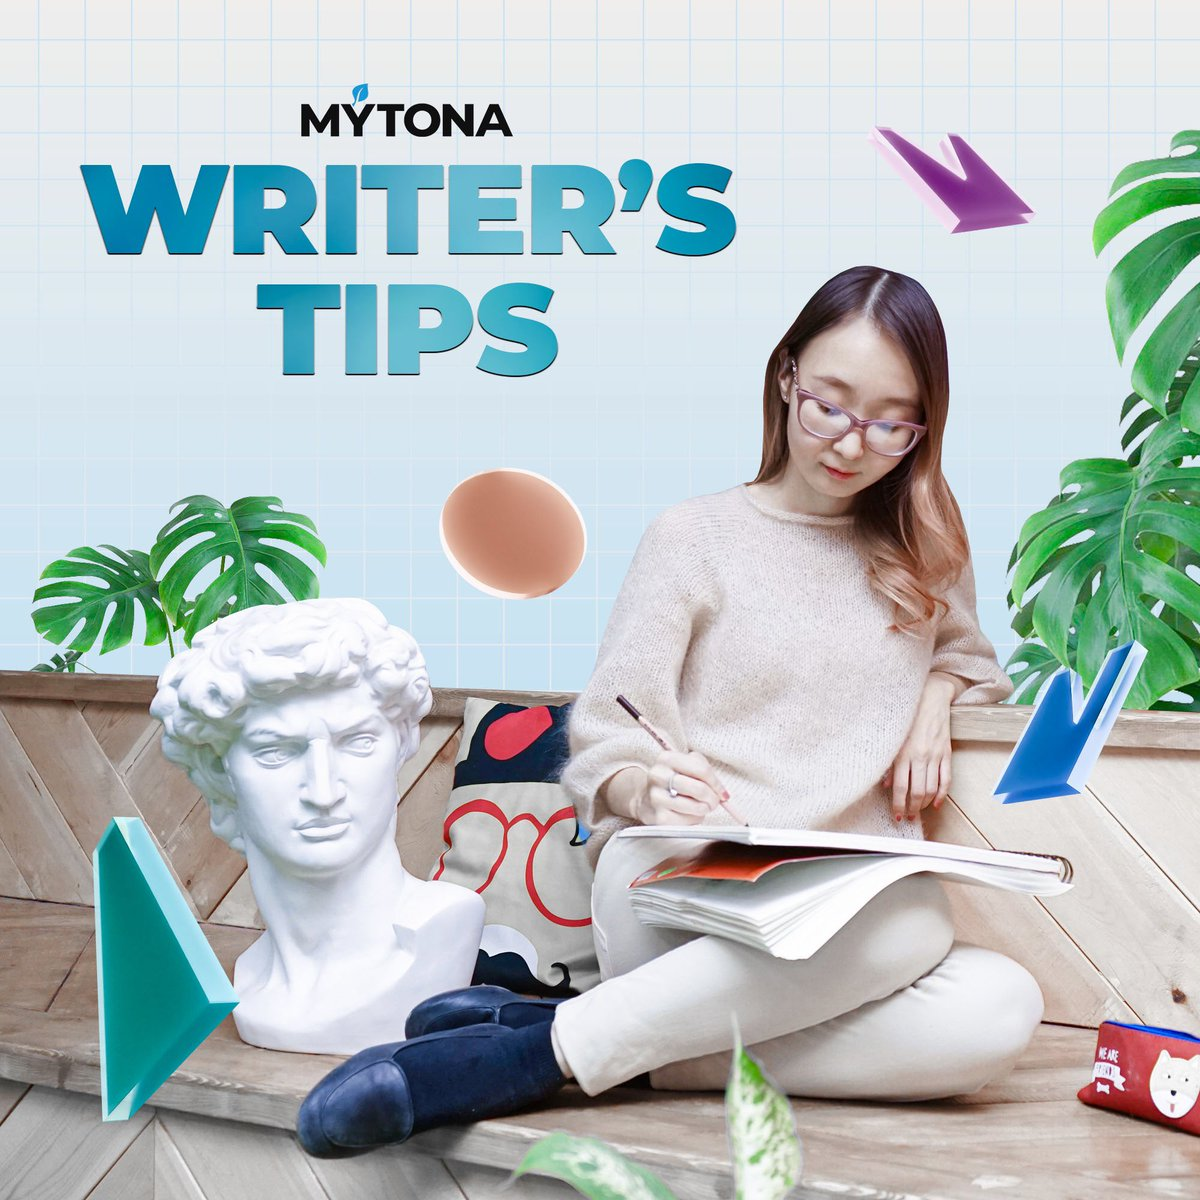 Autumn has come—the season of cozy nights with favorite books and lots of inspiration. Today we'll share with you tips on how to write an interesting story that will captivate the reader from the first lines📚✨  https://t.co/1ohn6egRA7 #mytona https://t.co/sbRRYWtNpr